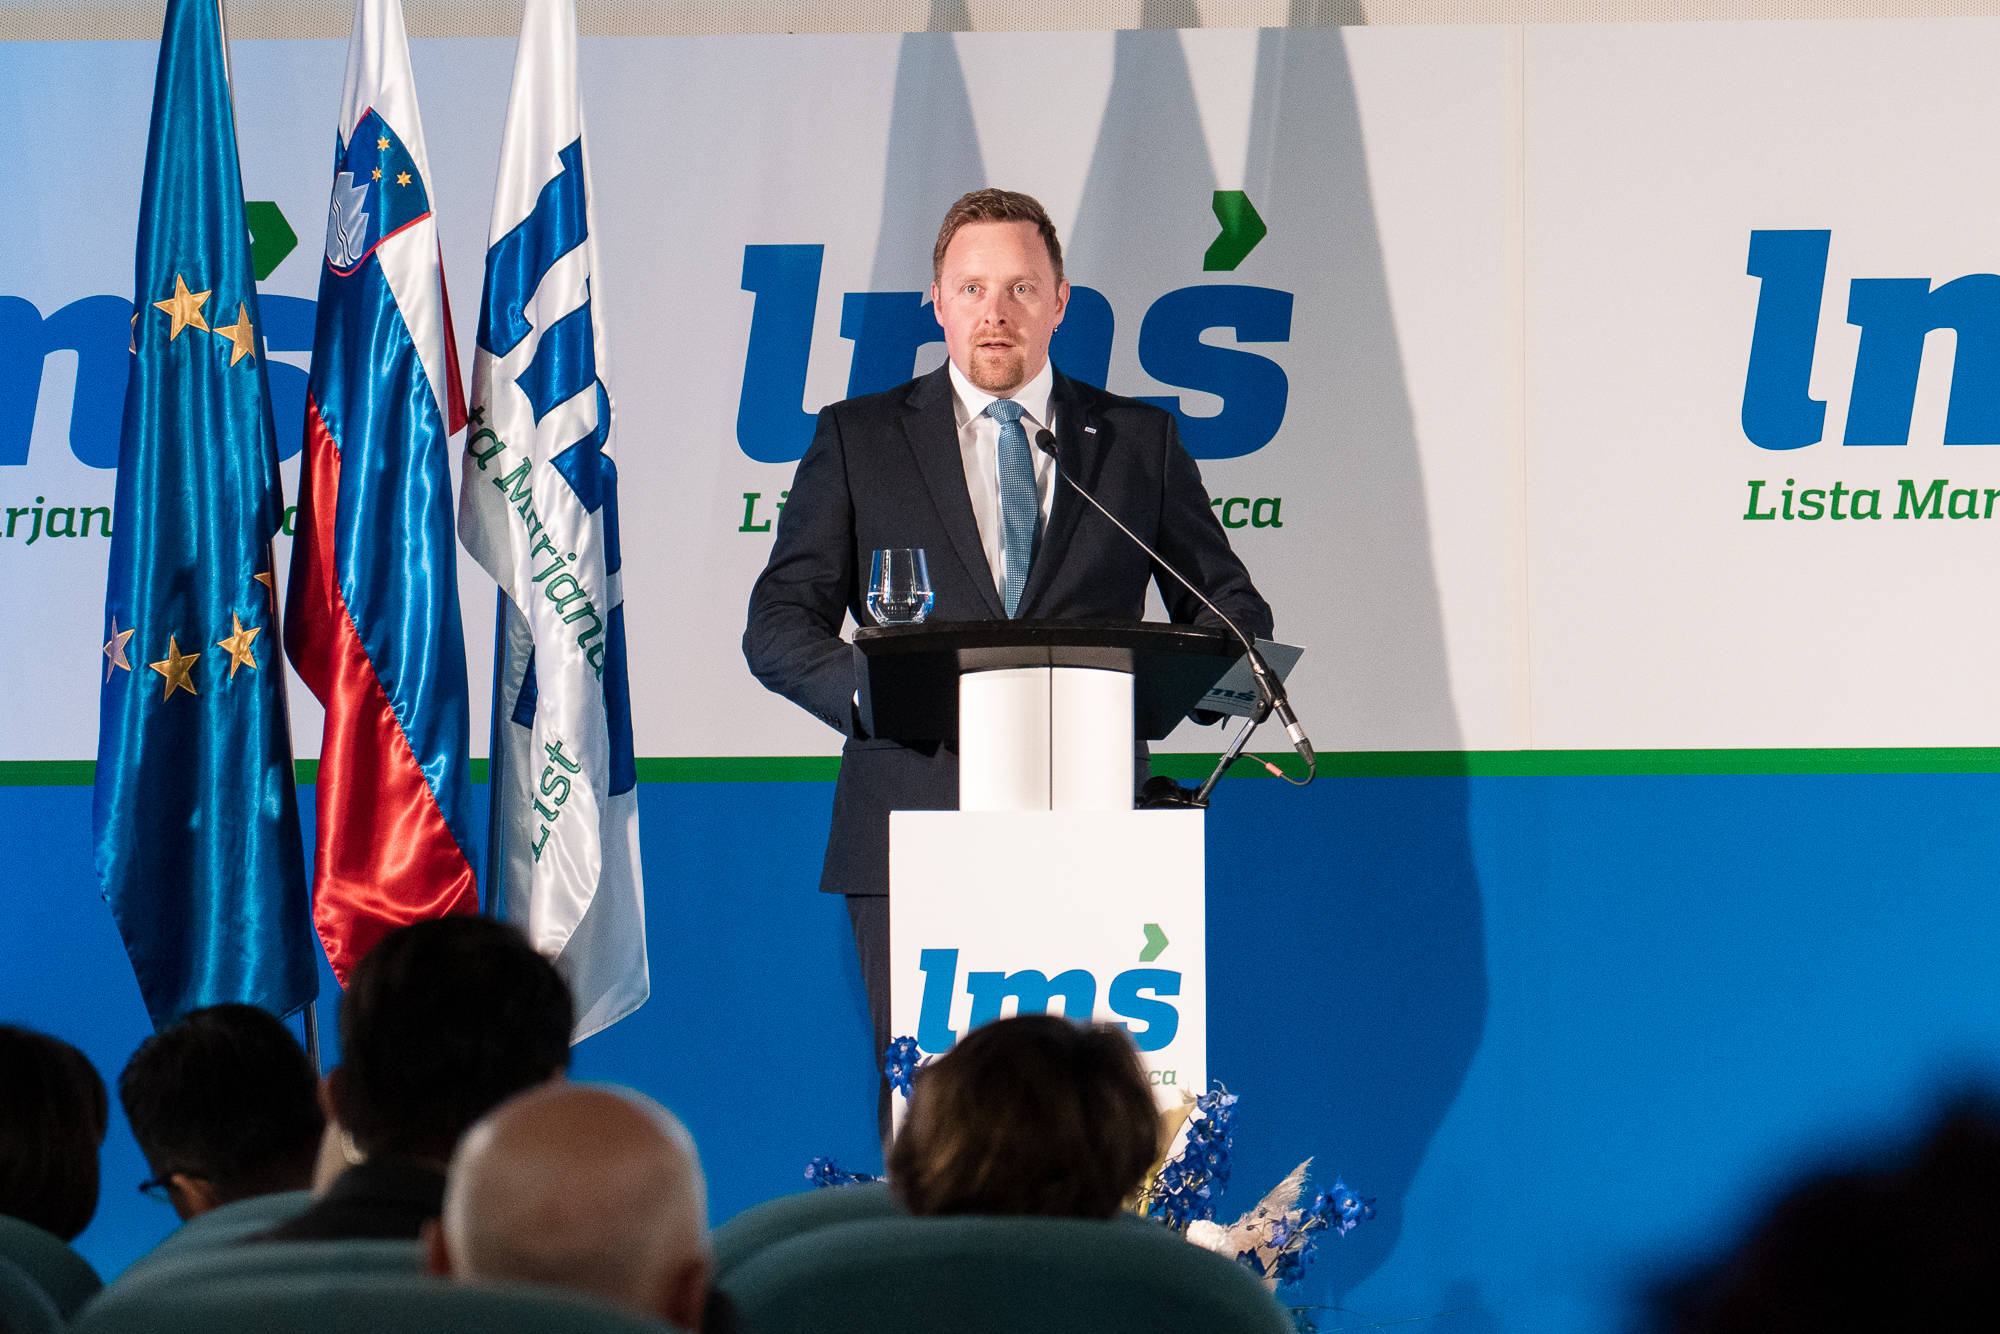 Igor Žavbi, vice president of Lista Marjana Šarca, on the stage at the Fifth Congress of LMŠ